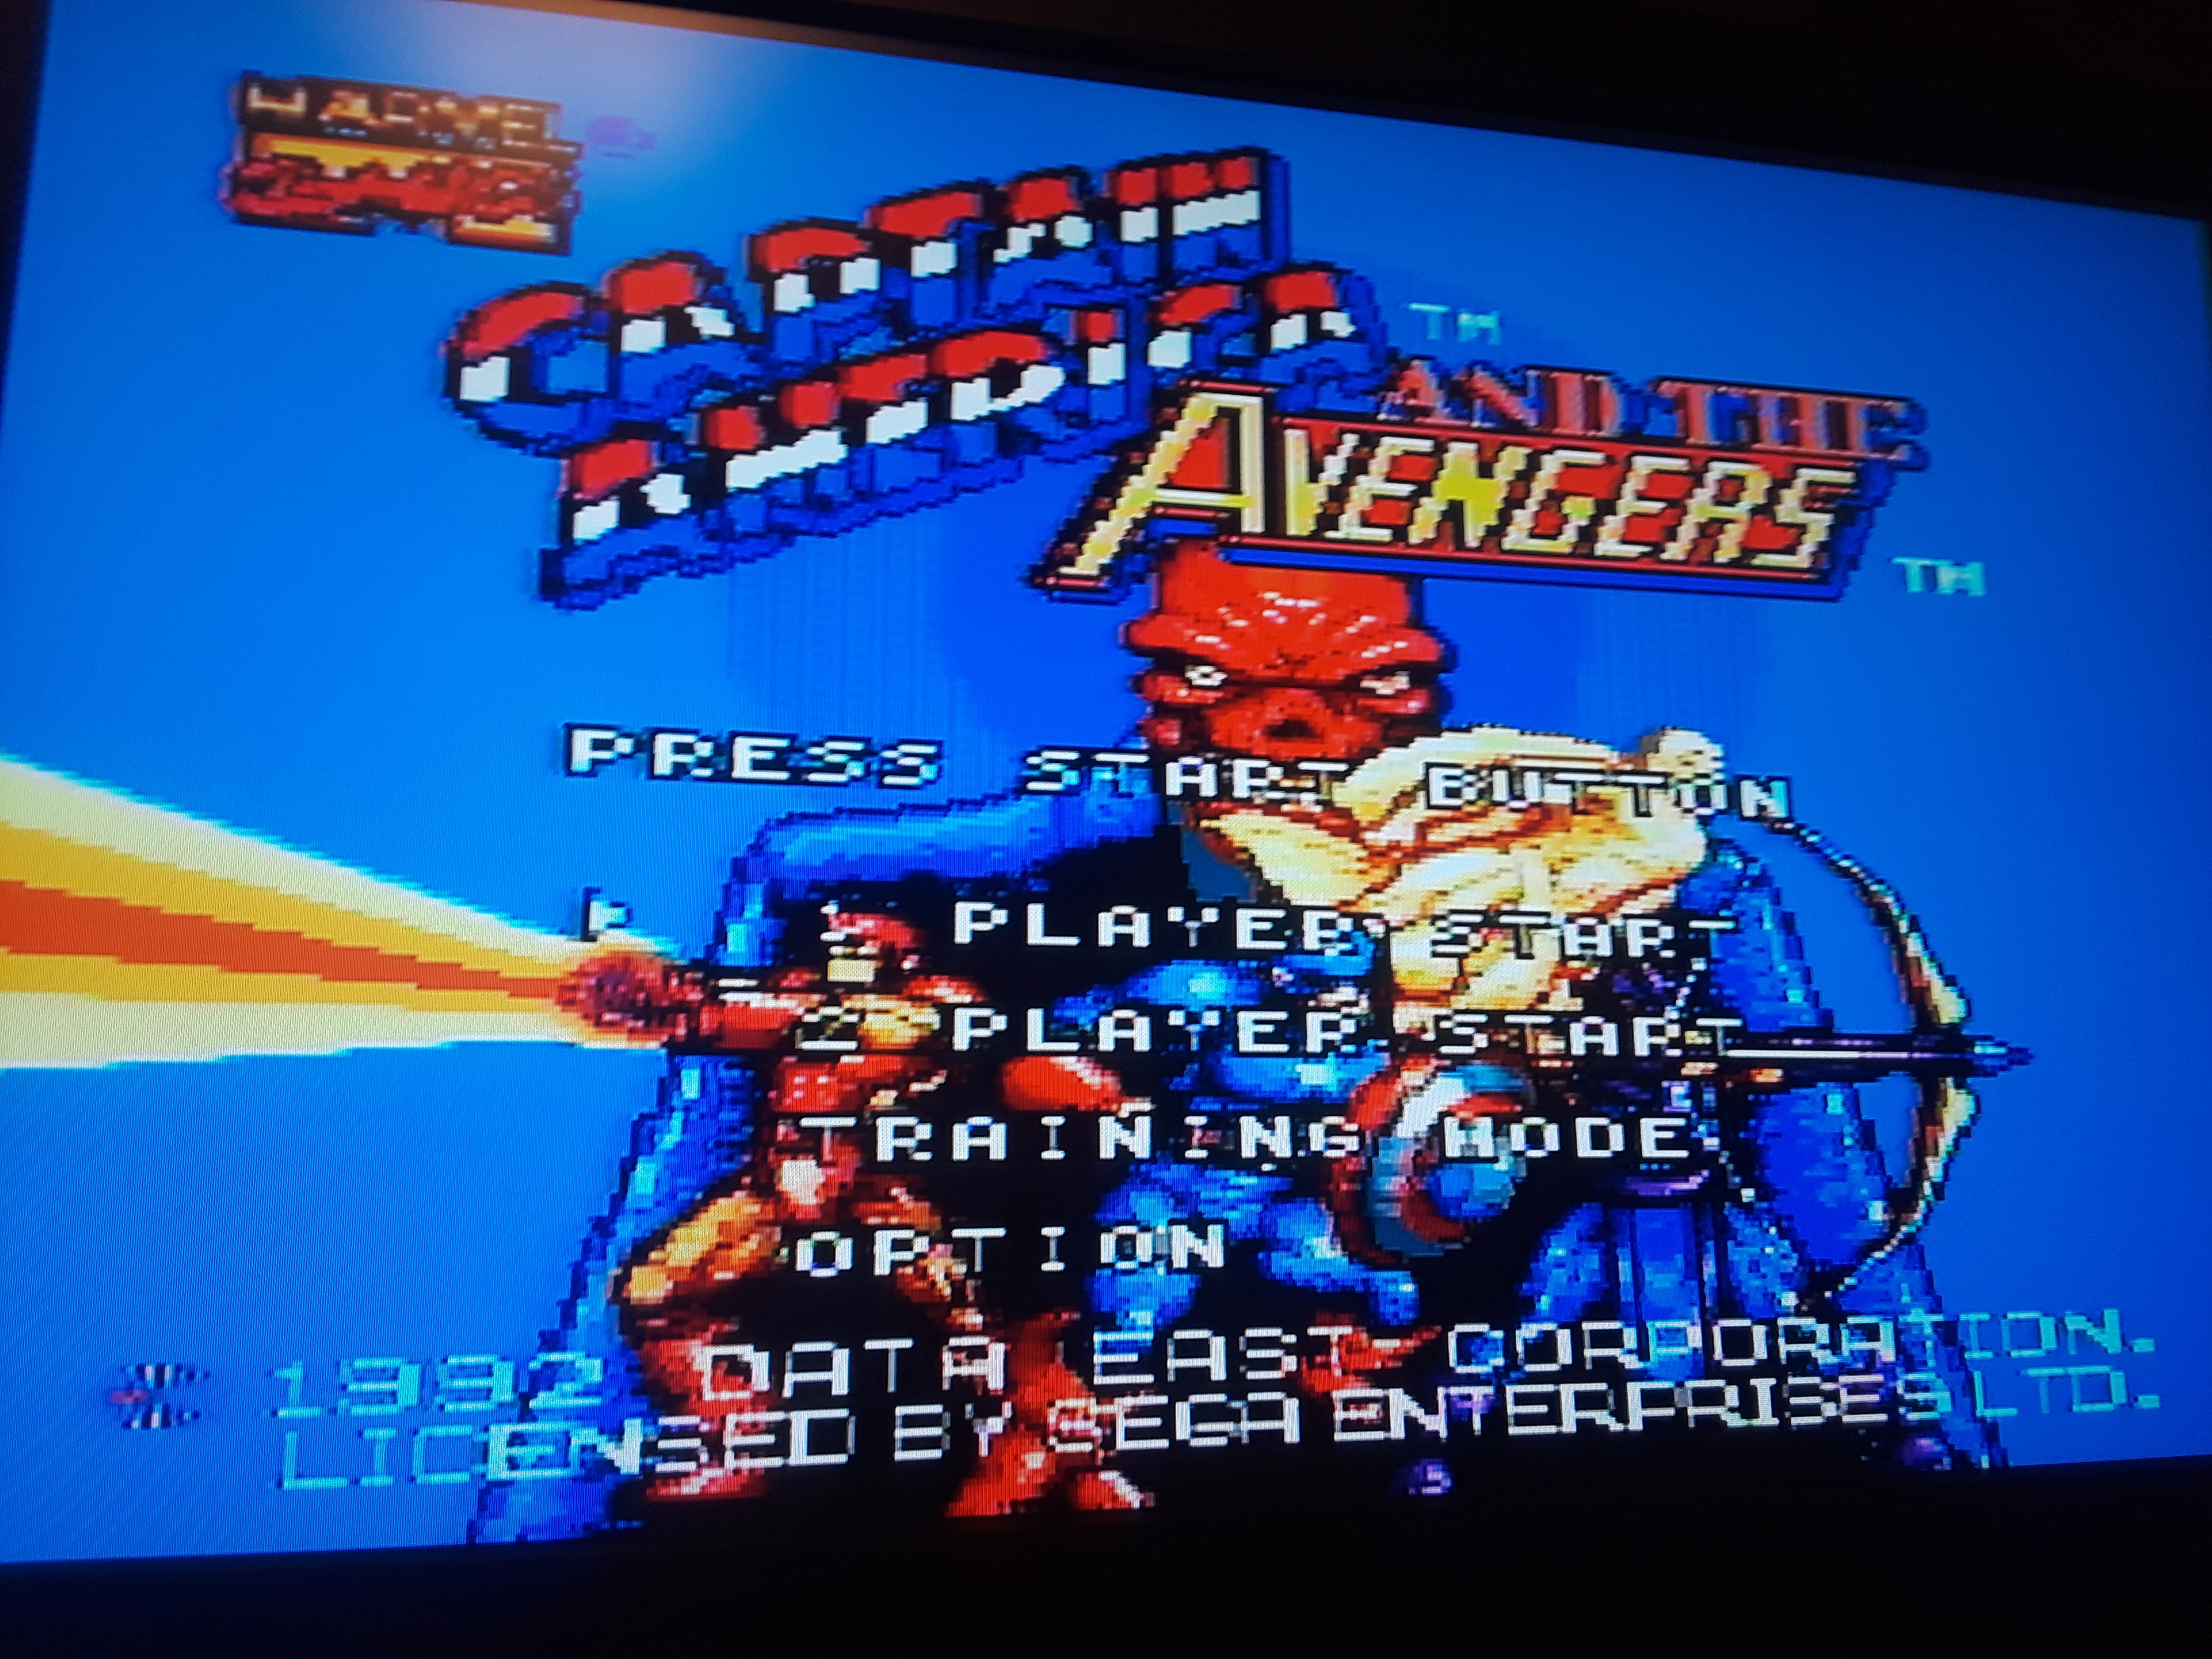 JML101582: Captain America and the Avengers [Normal] (Sega Genesis / MegaDrive Emulated) 11,379 points on 2018-08-03 23:41:55